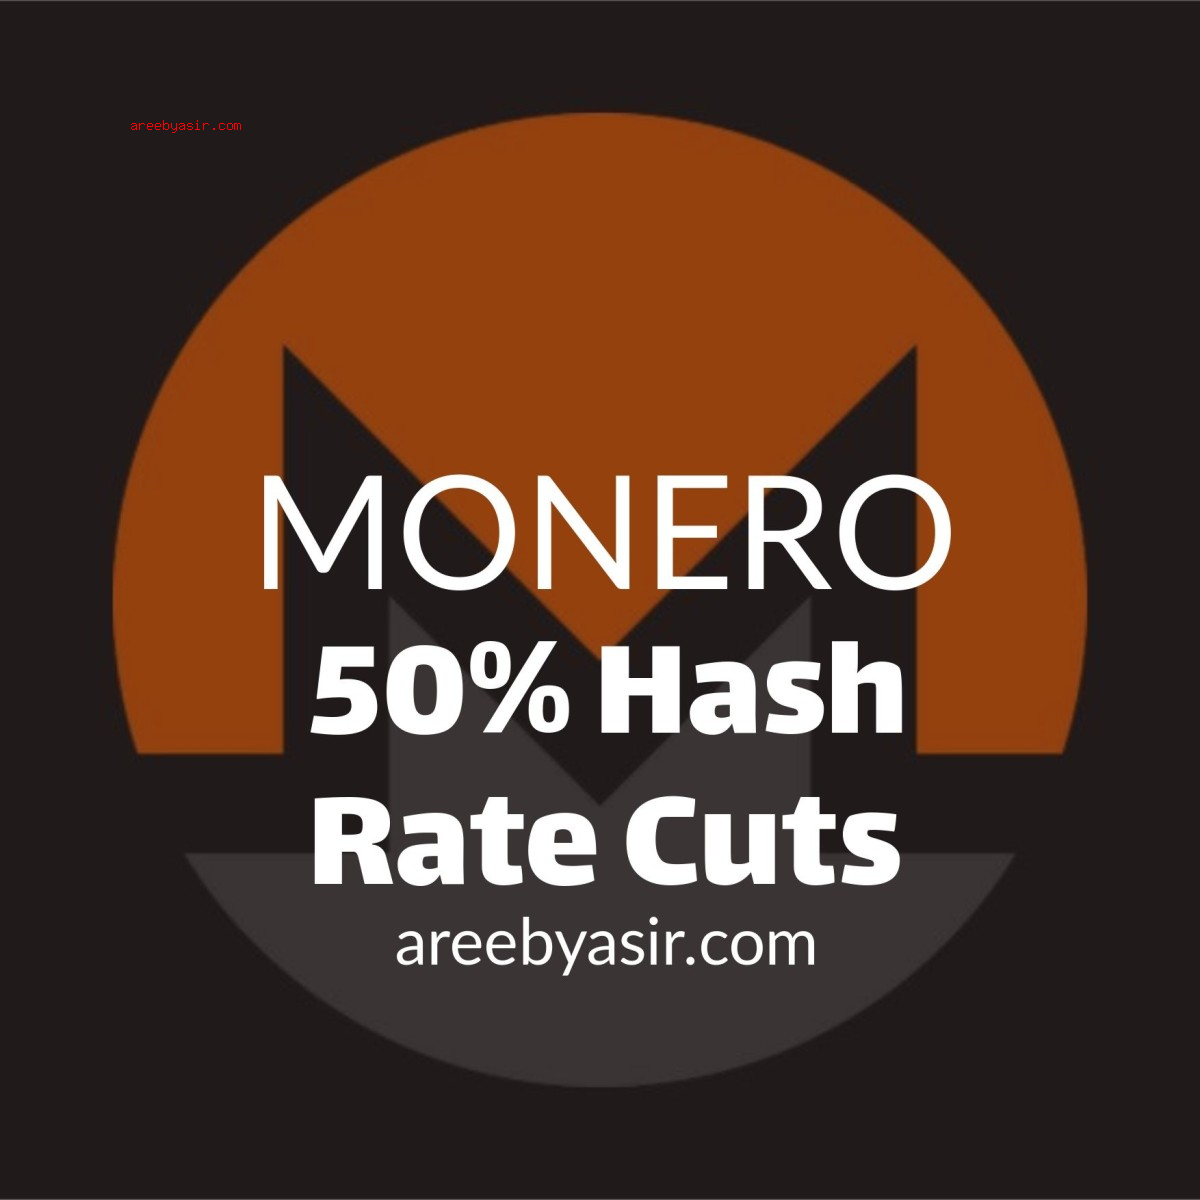 Monero lost more than 50% of its network hash rate